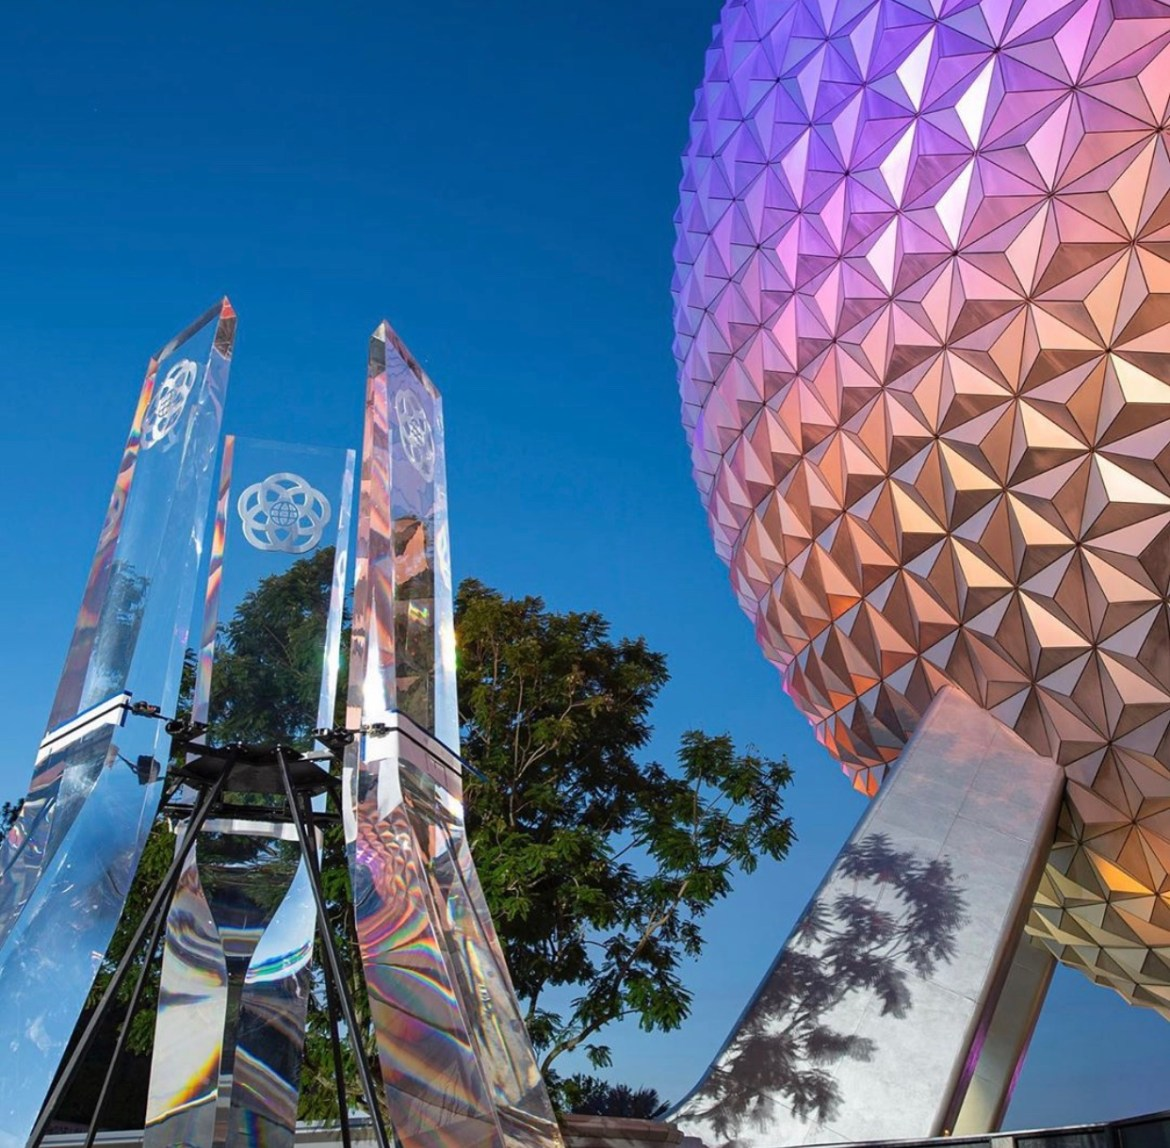 Inside look at how the new Epcot Pylons were installed